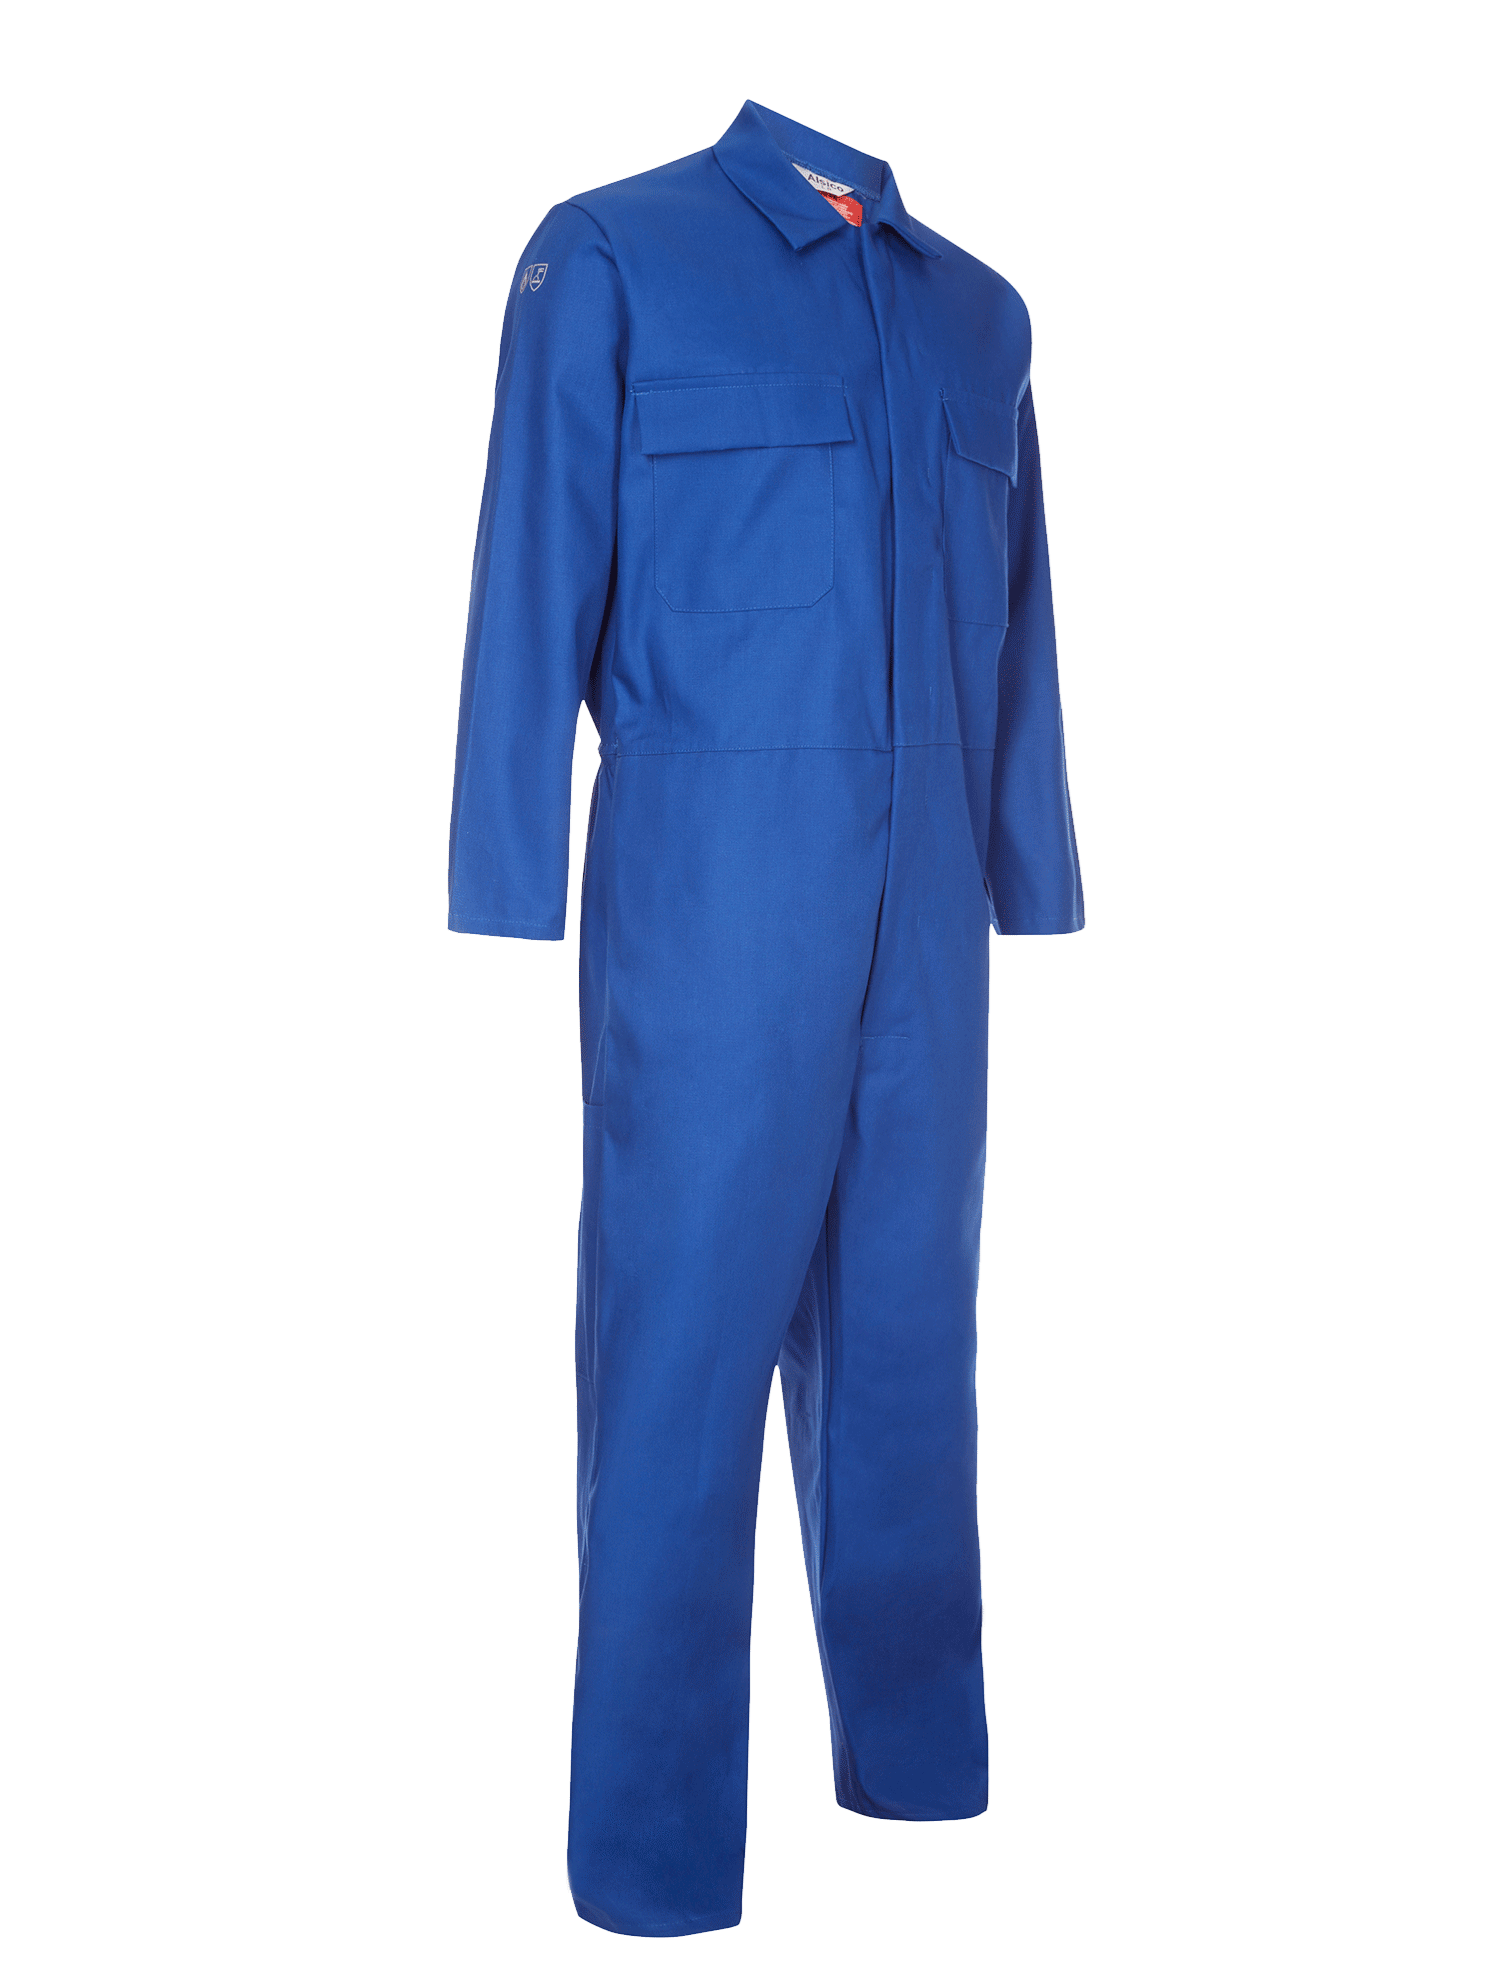 Picture of Coverall made with Zeus FR - Royal Blue